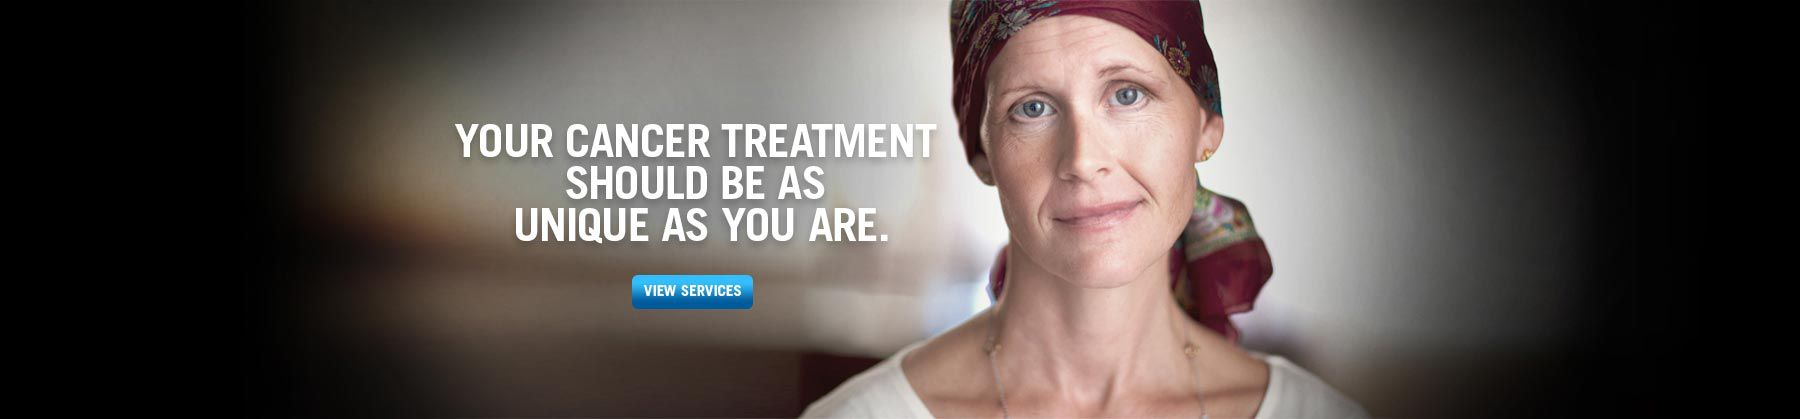 Your cancer treatment should be as unique as you are.